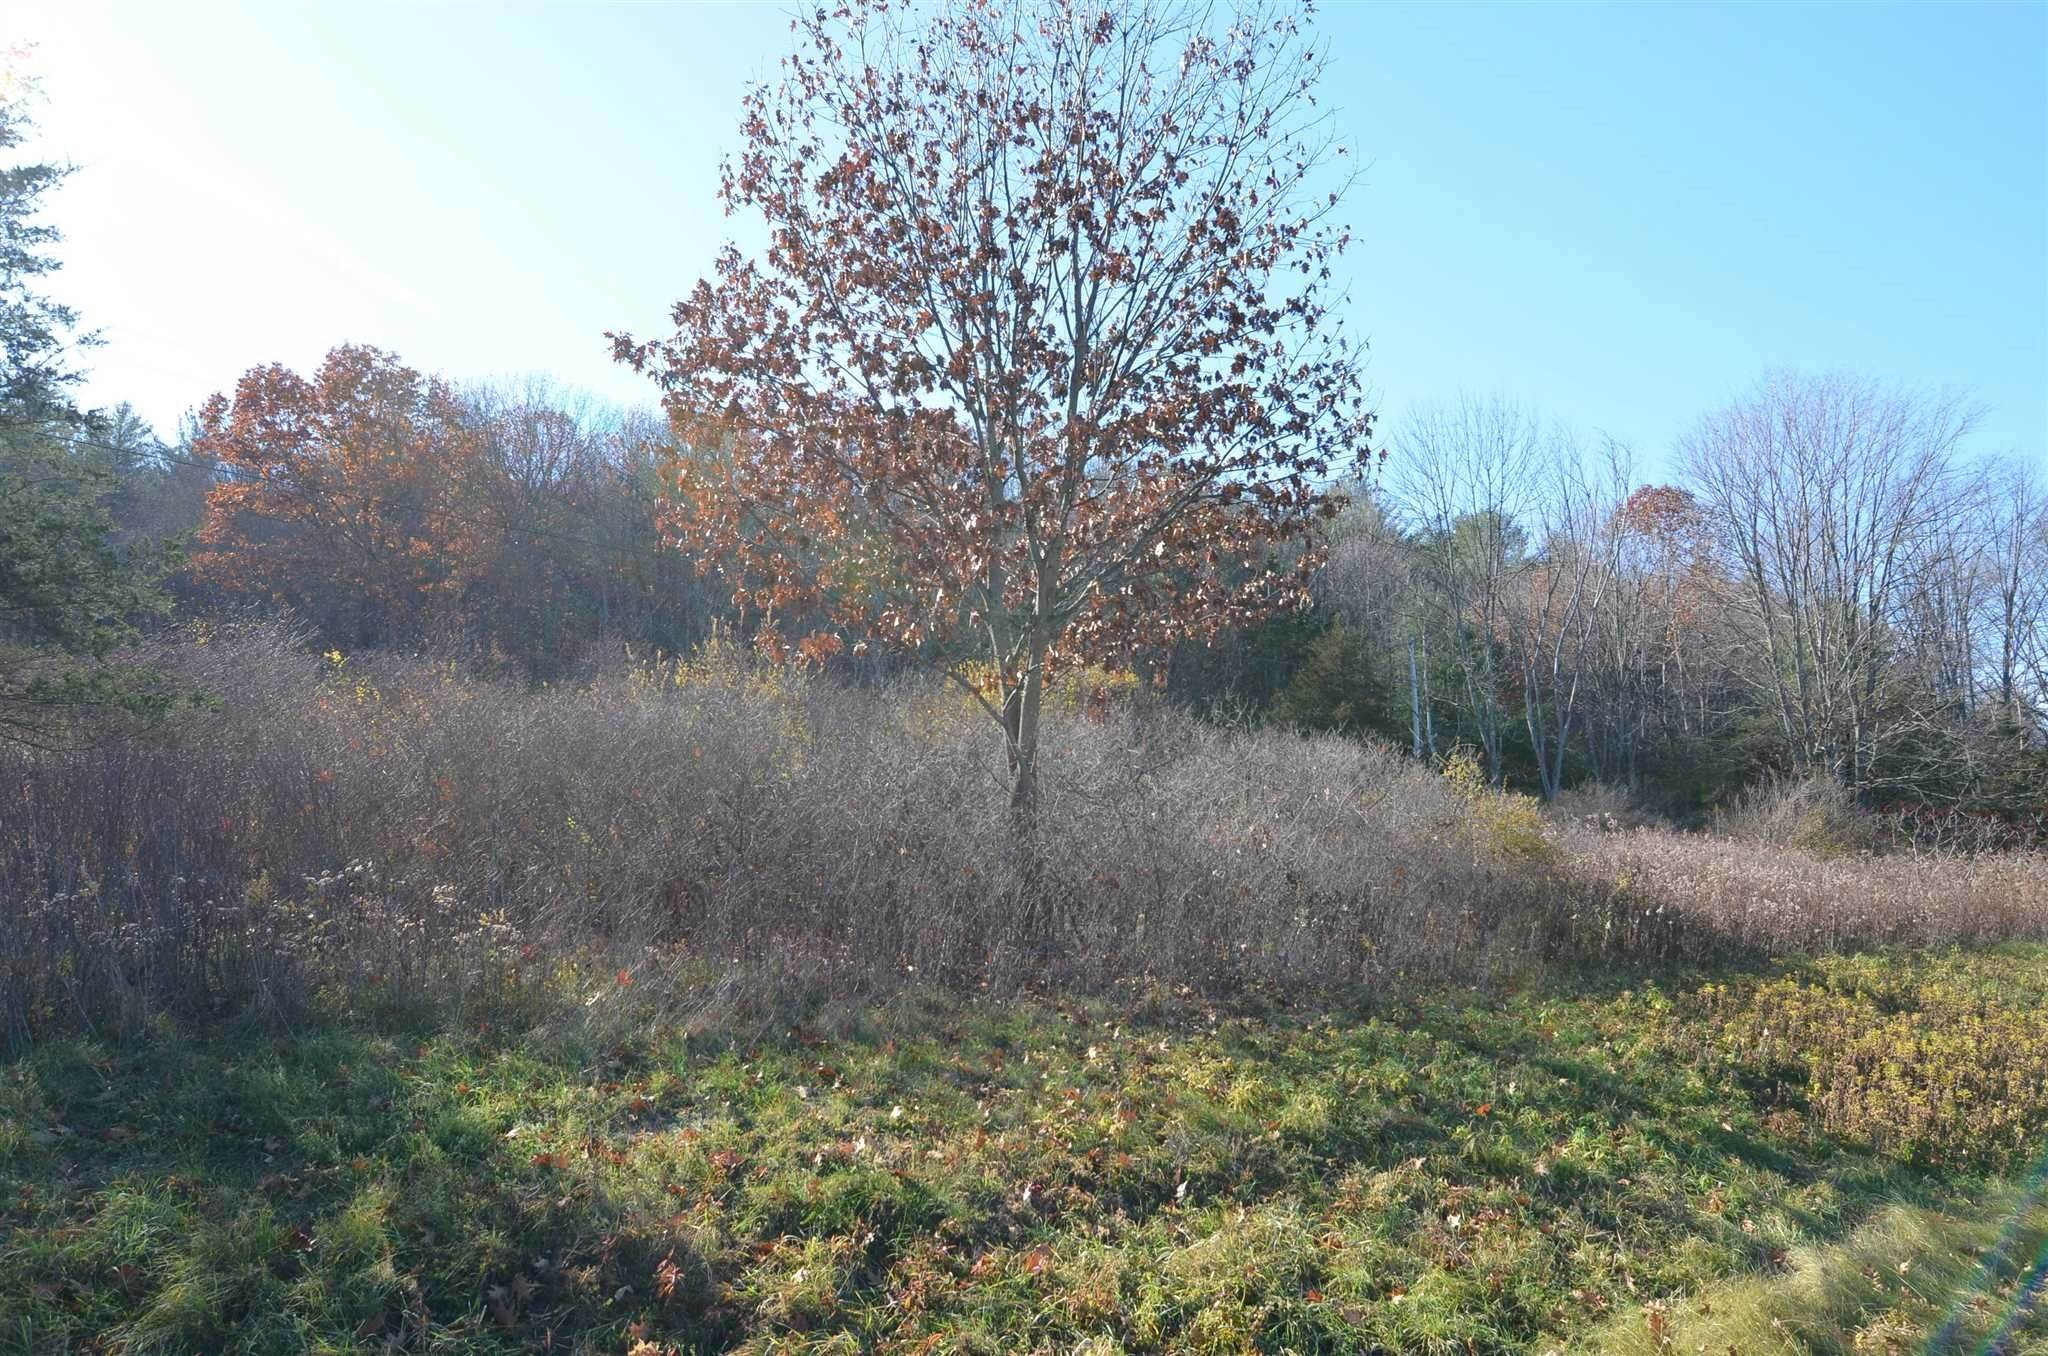 Land for Sale at STATE ROUTE 82 Taghkanic, New York 12521 United States